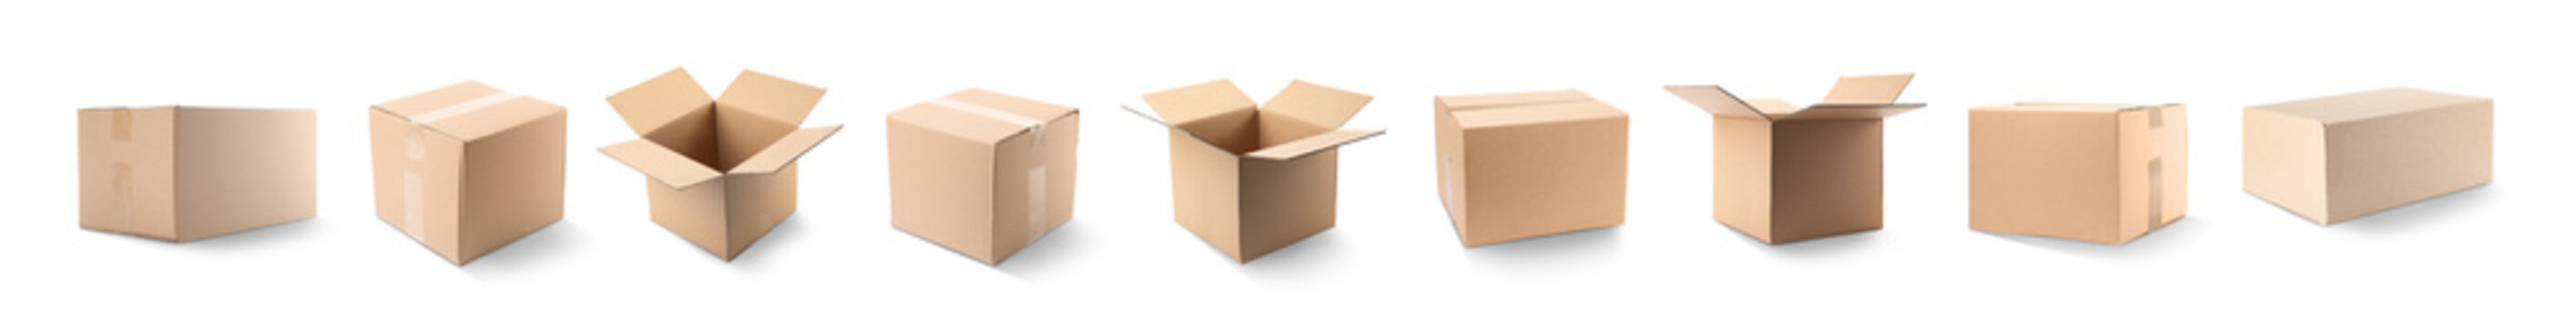 Set of different cardboard boxes on white background. Banner design